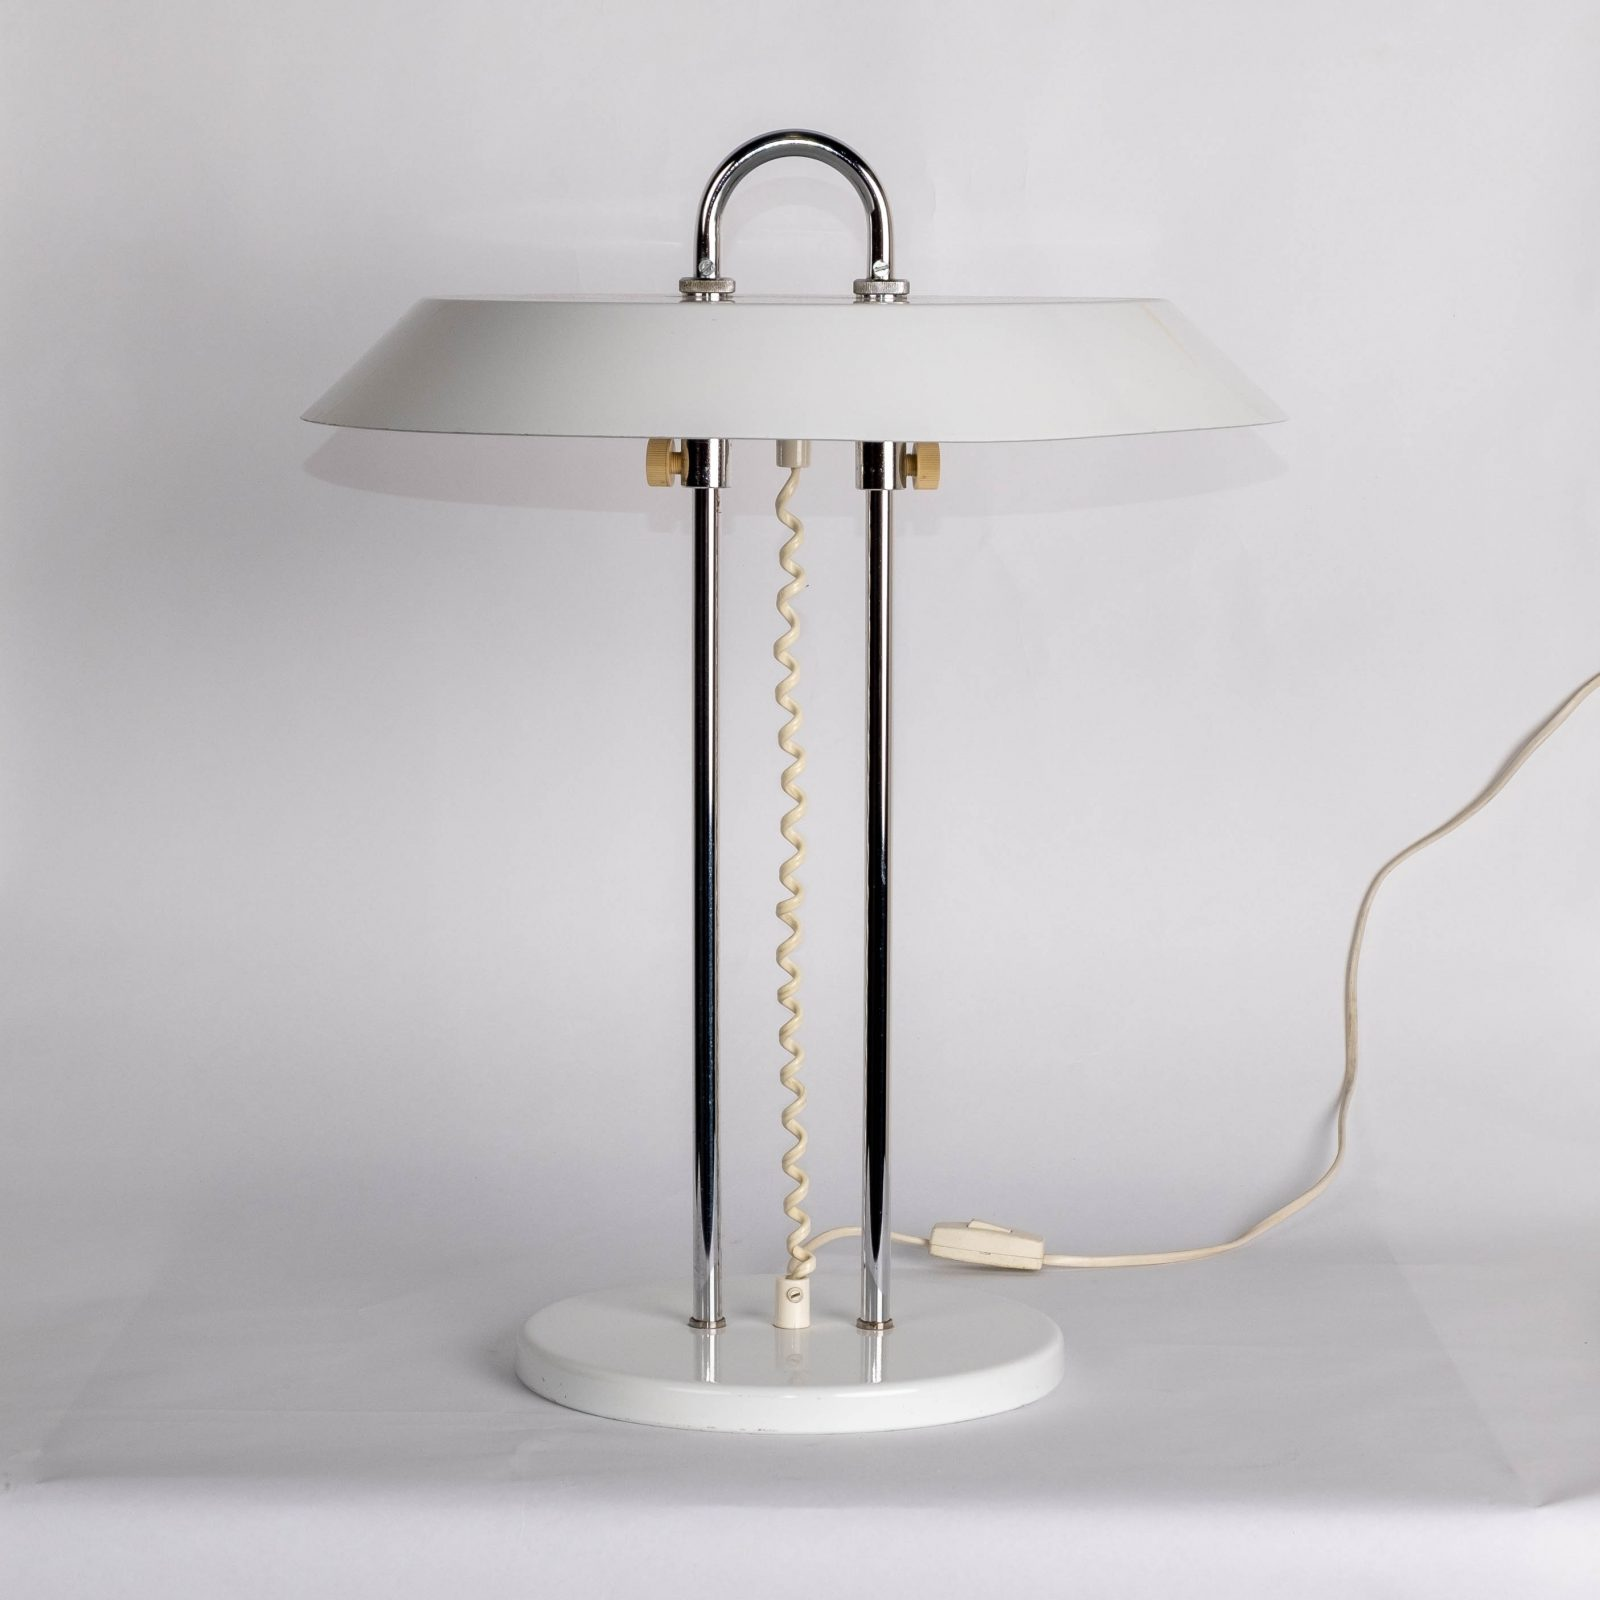 Desk Lamp With Chrome Body, The Netherlands Heroshot